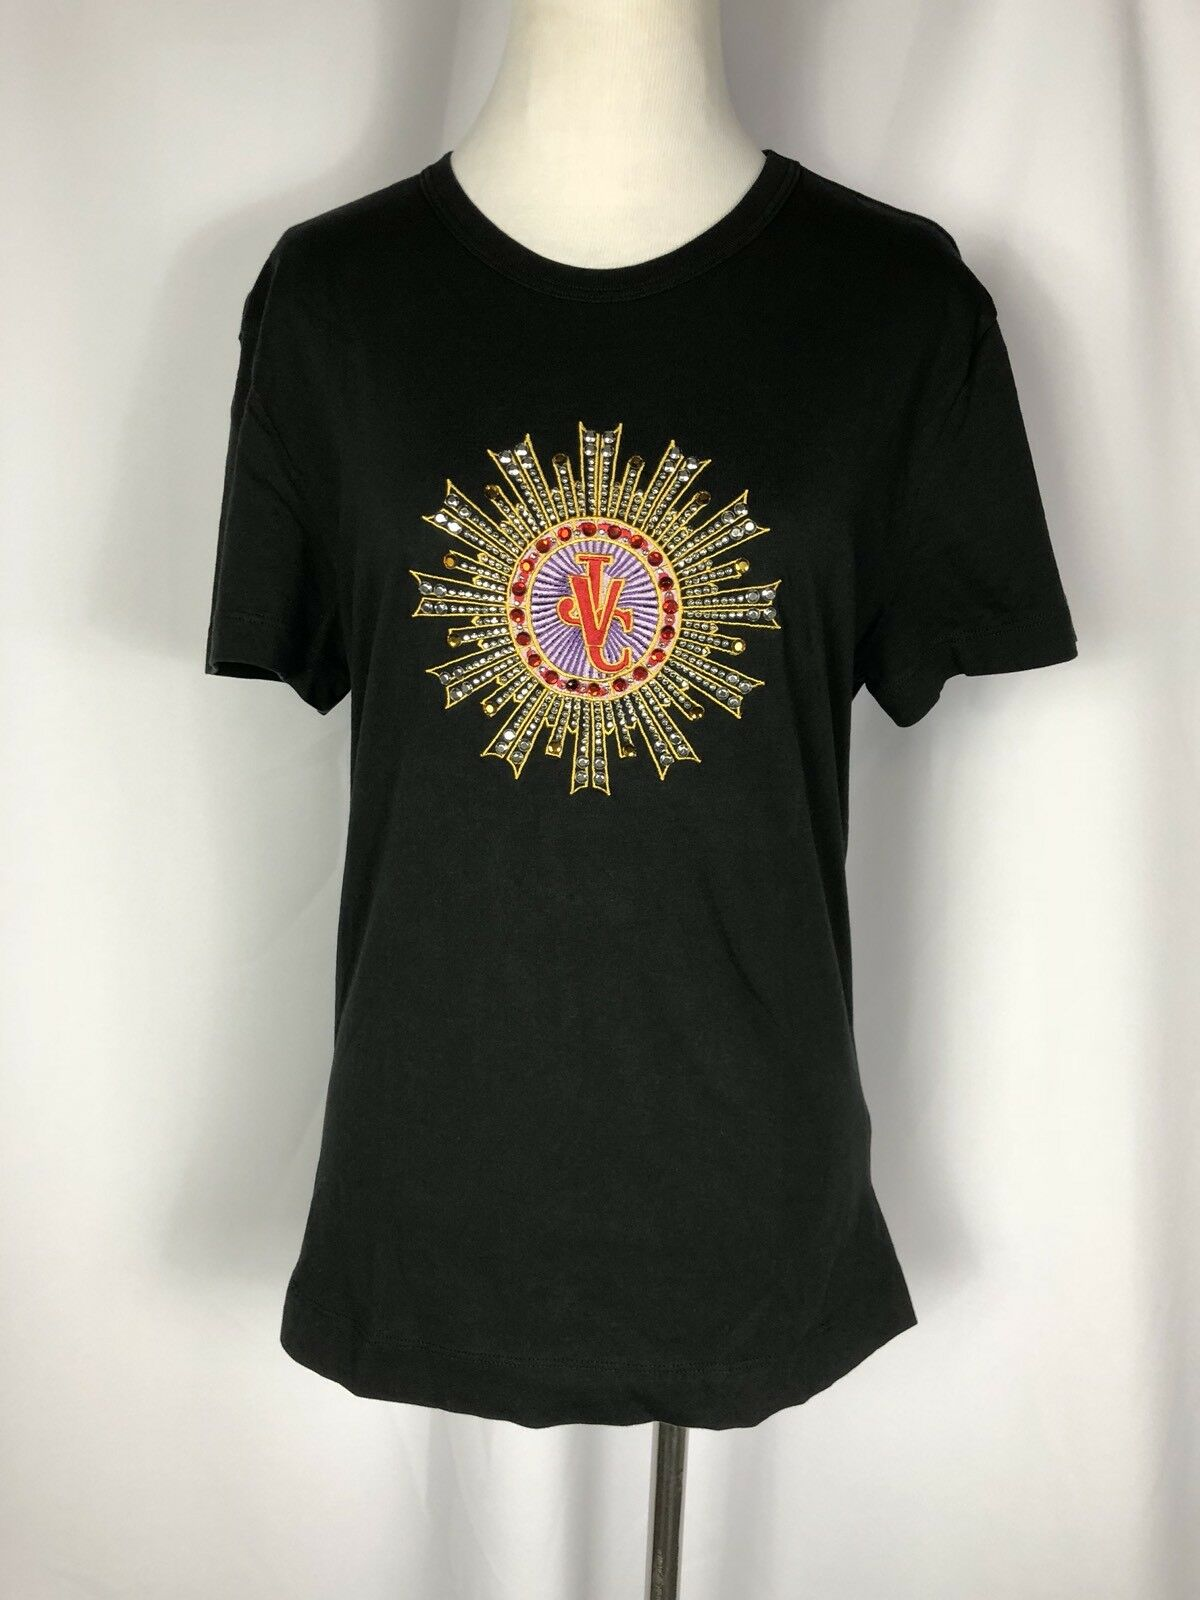 Rare Vtg Gianni Versace Jeans schwarz Couture Jeweled Logo Cotton Top